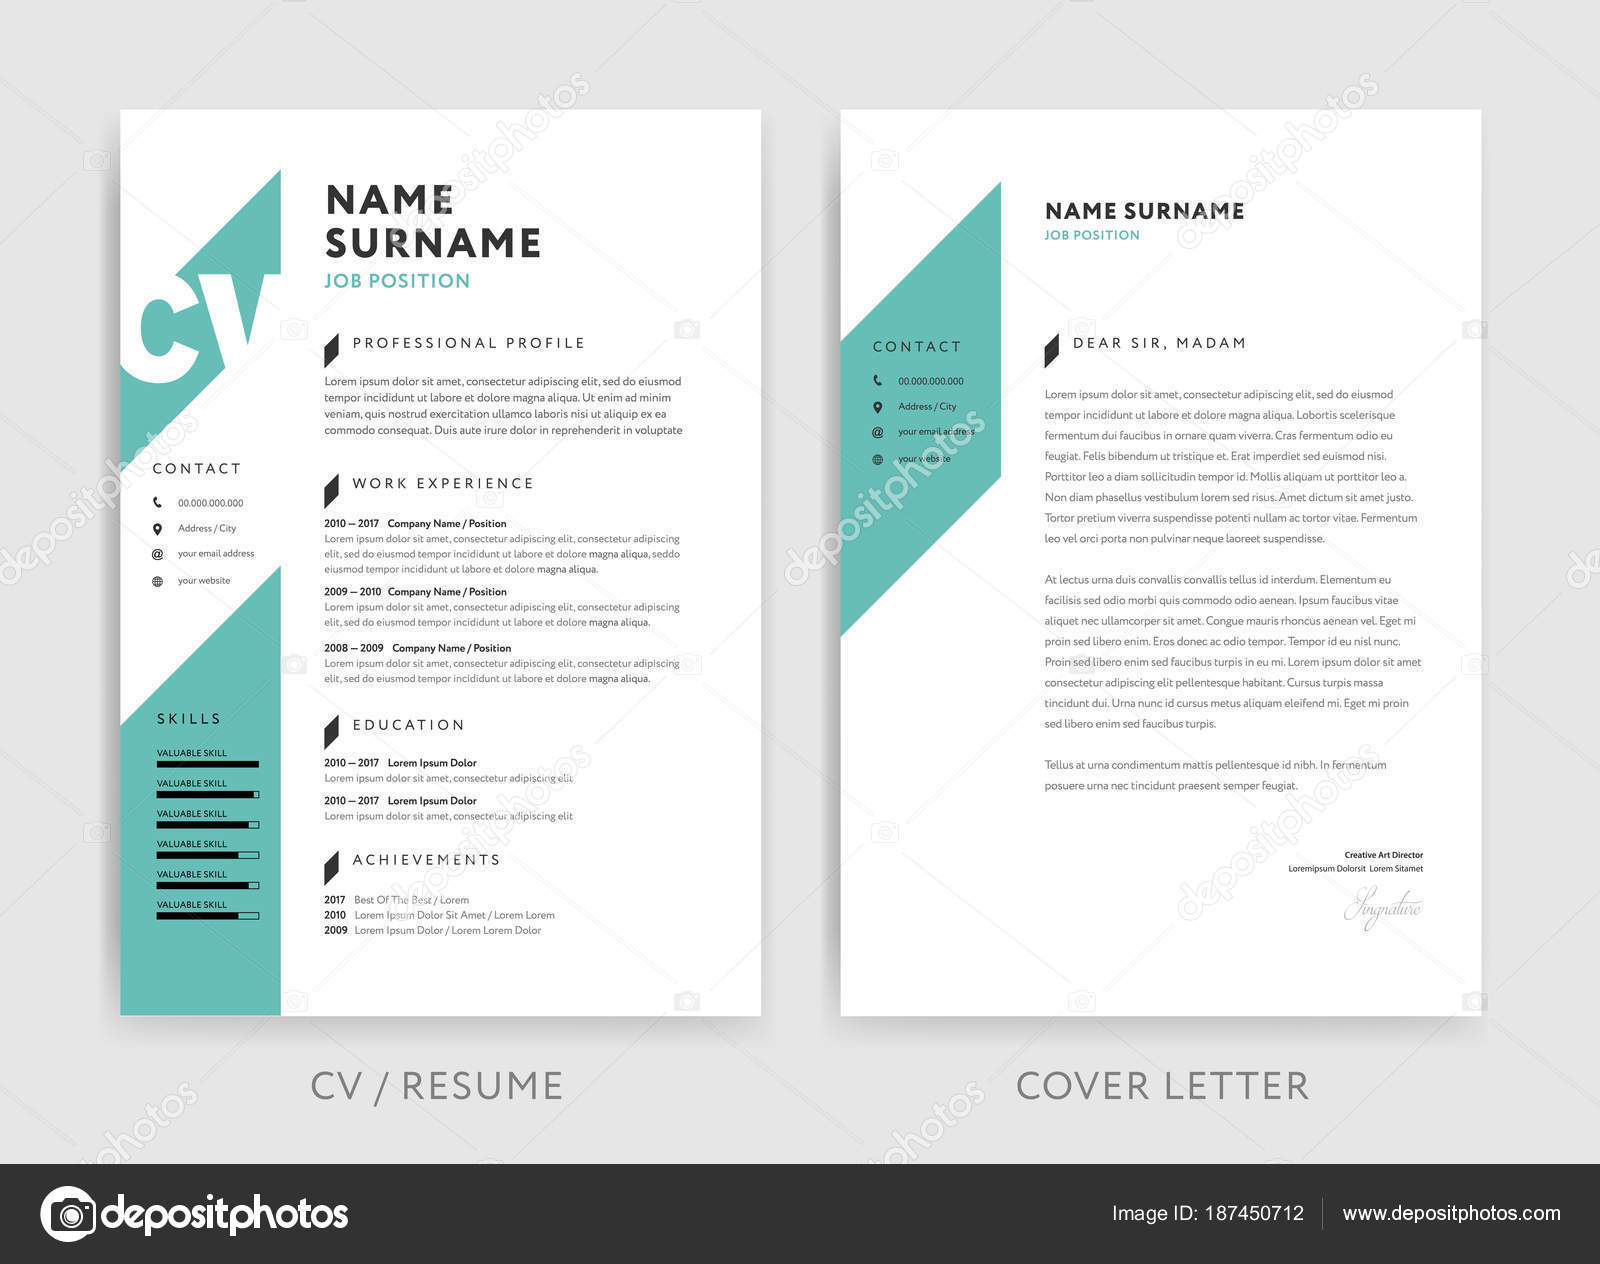 creative cv resume template teal background color minima stock vector forestgraphic Resume Resume Picture Background Color